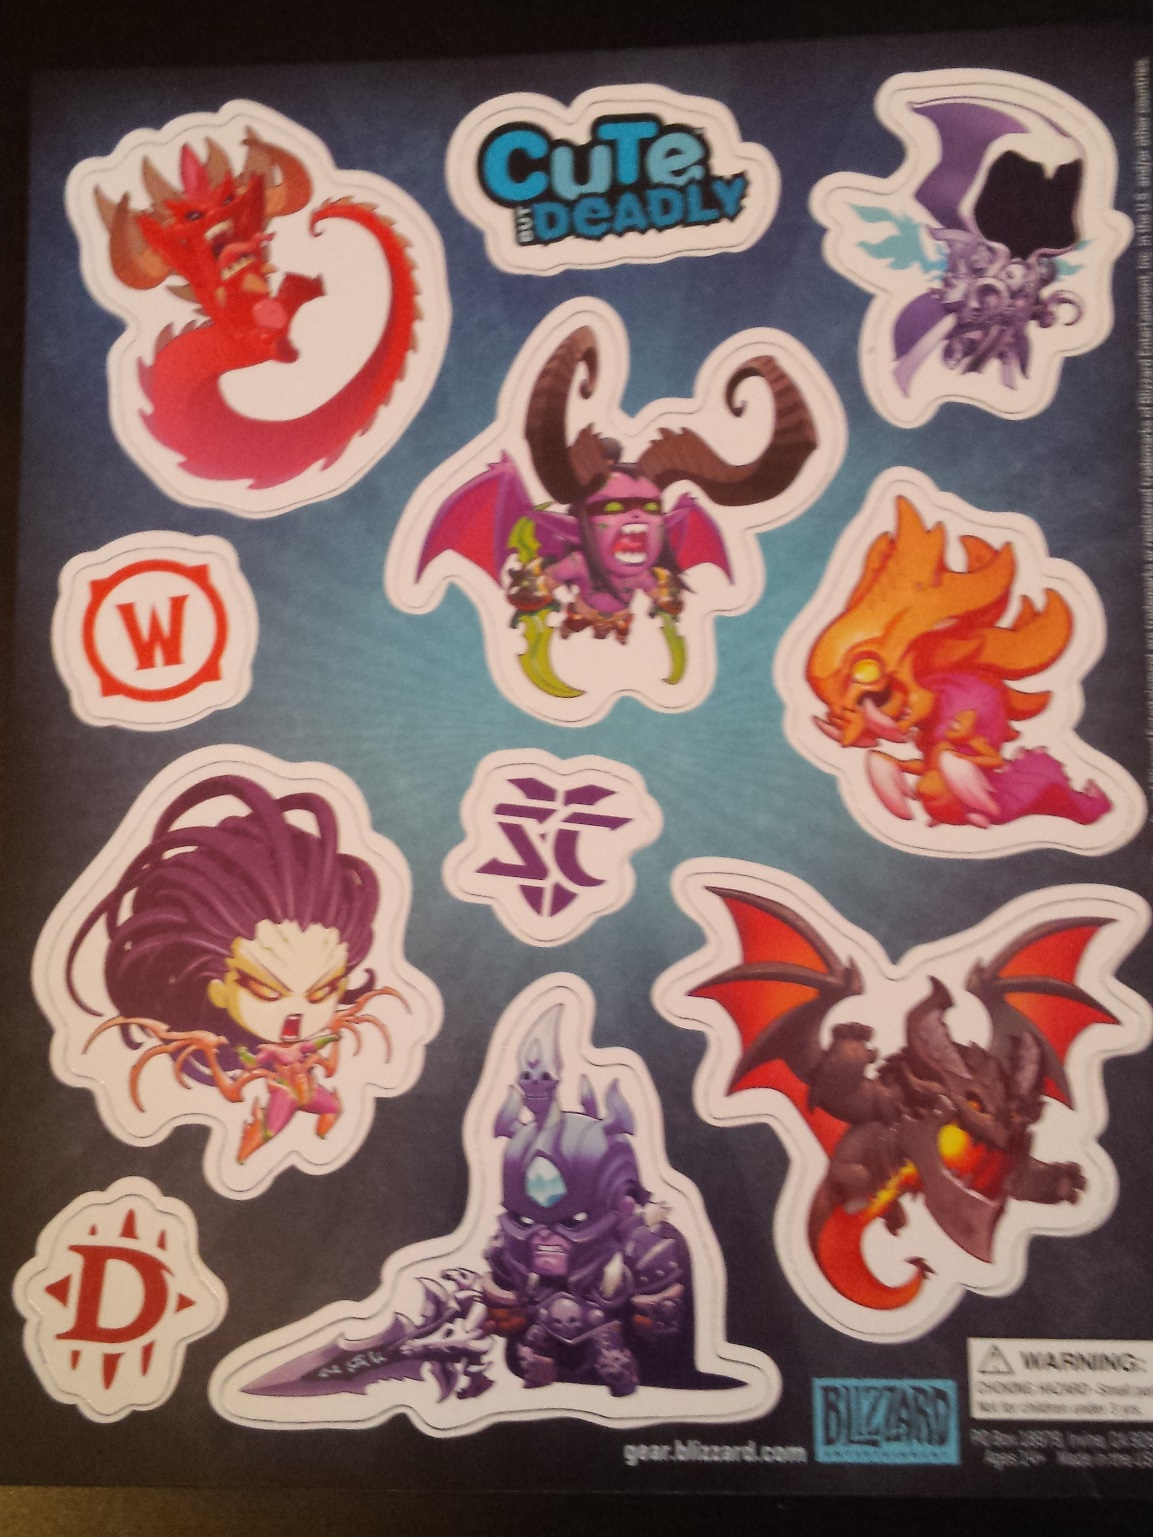 Cute but deadly blizzard stickers, loot crate, loot crate review, november loot crate, unboxing